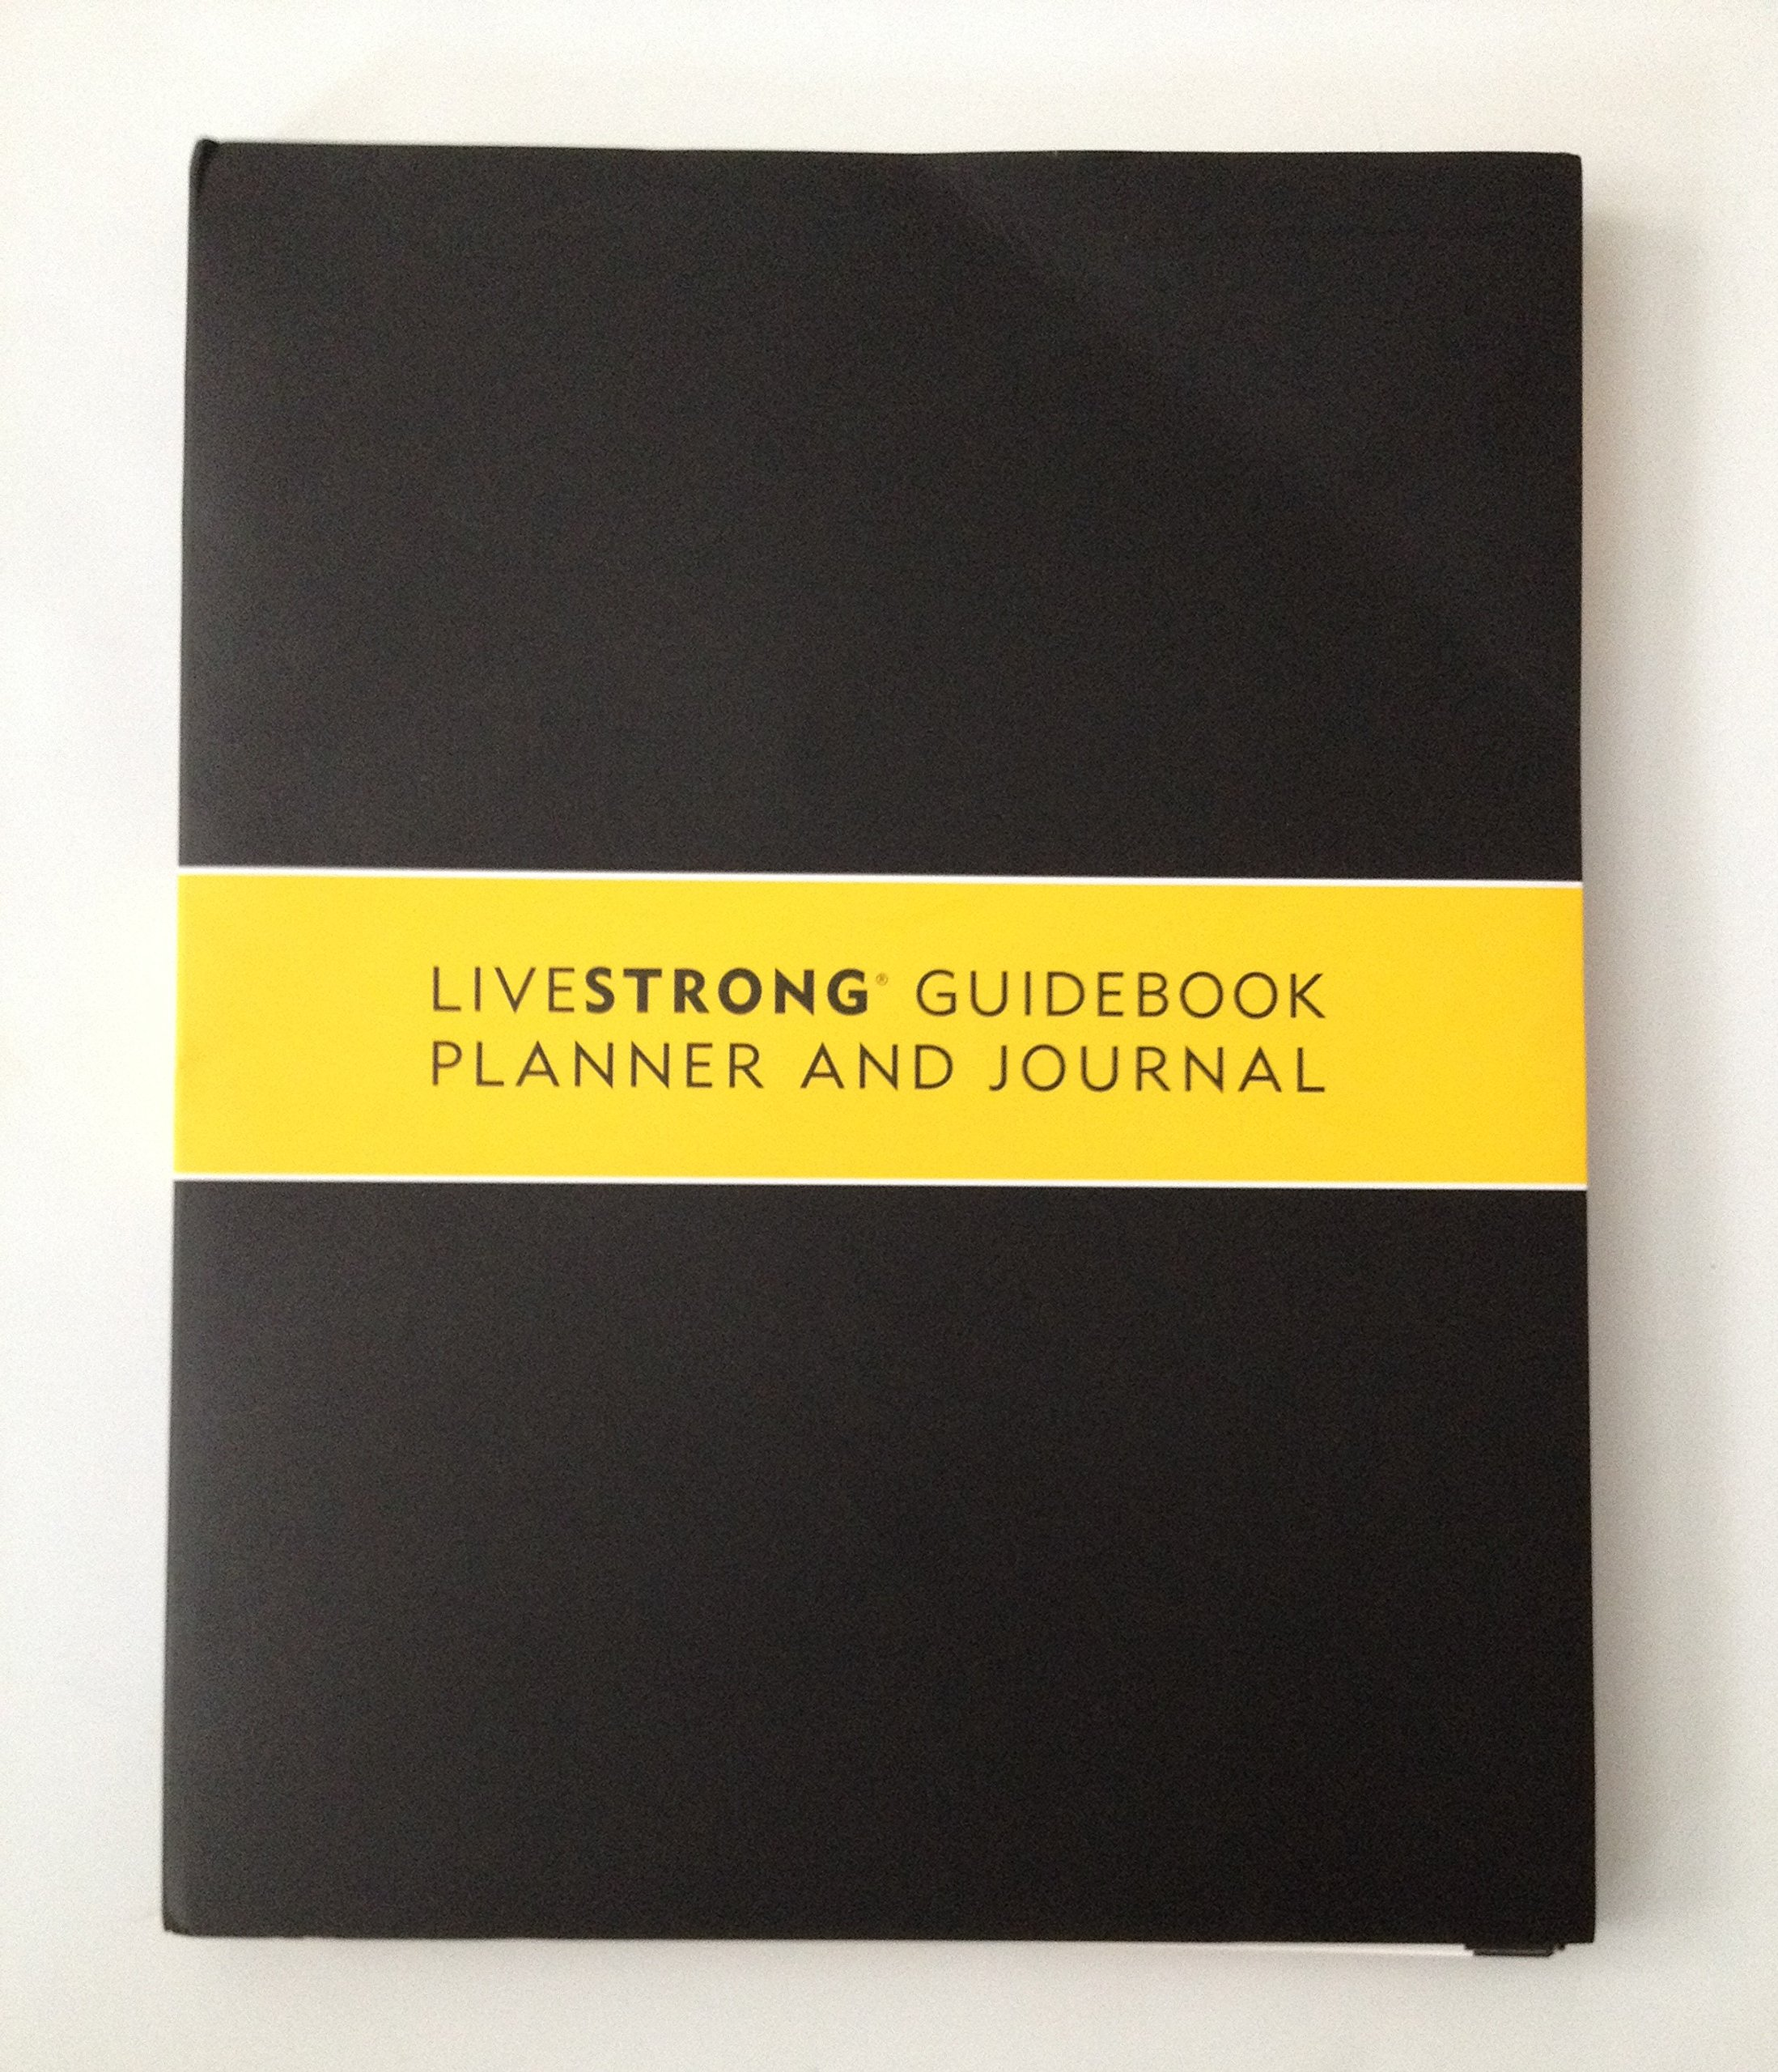 livestrong guidebook planner and journal amazon com books rh amazon com Barnes and Noble Travel Journals Travel Journal Planner